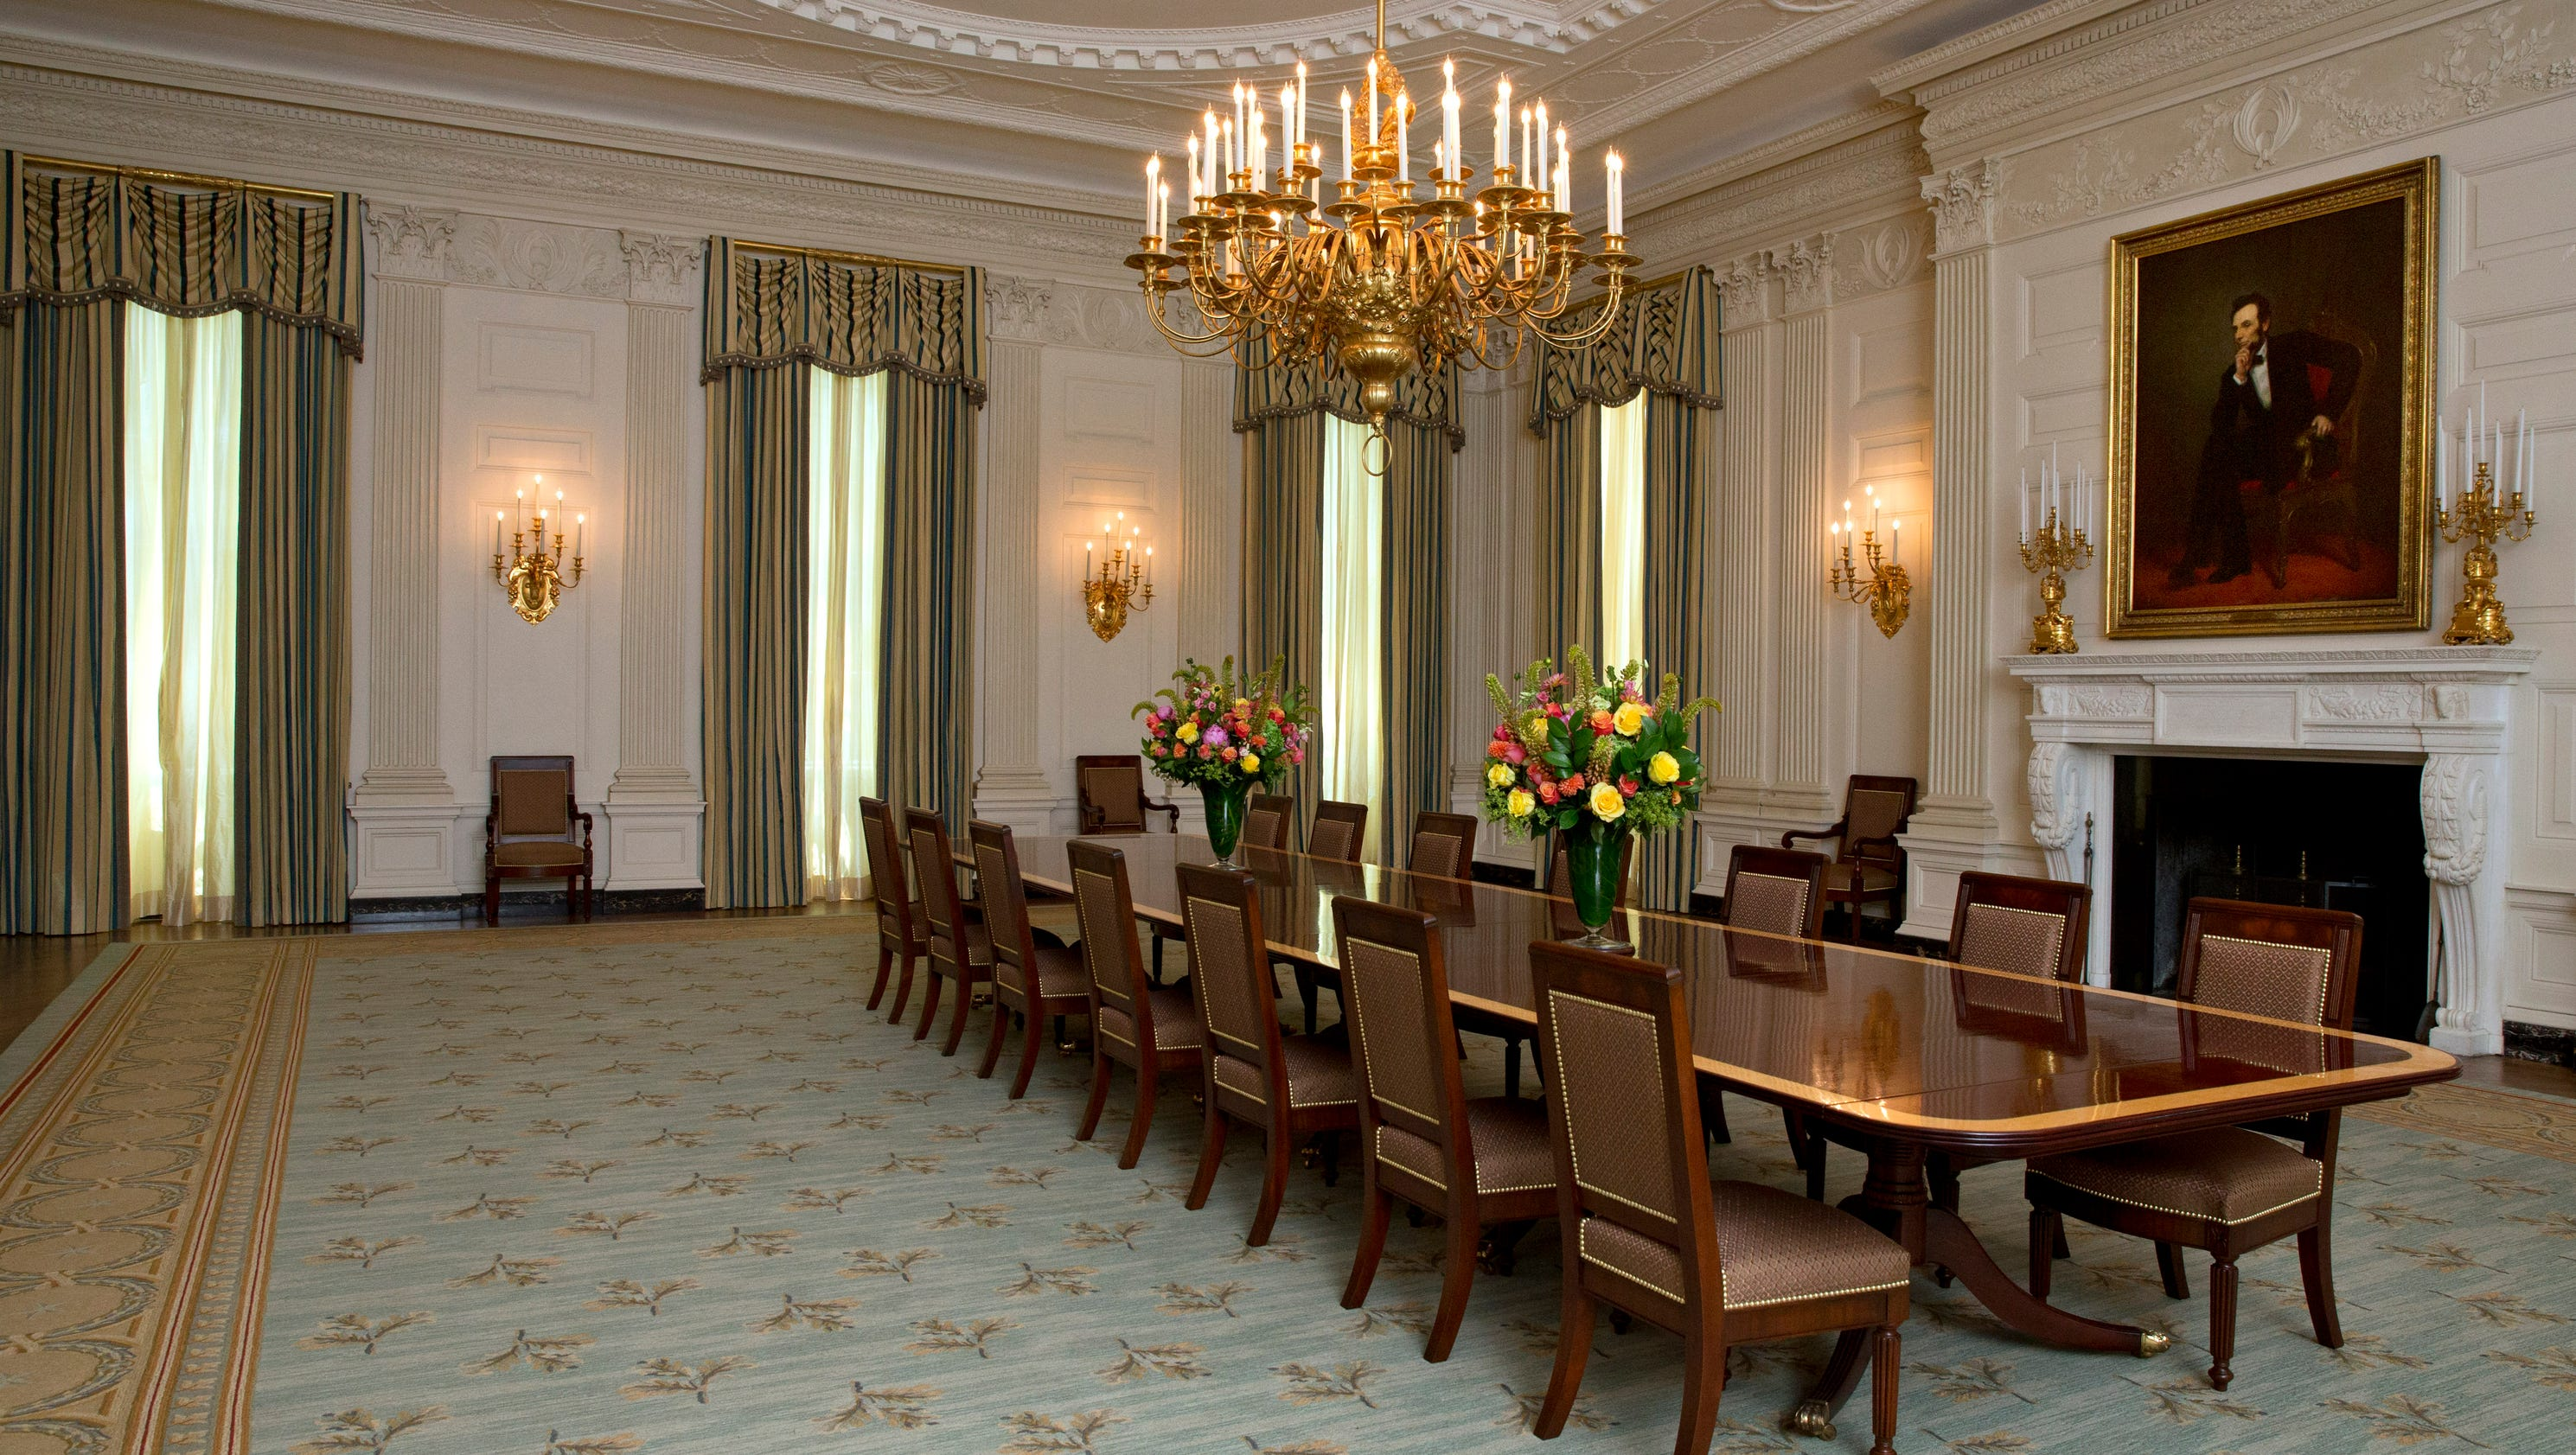 Trump Changes To Oval Office Michelle Obama Touches Up State Dining Room